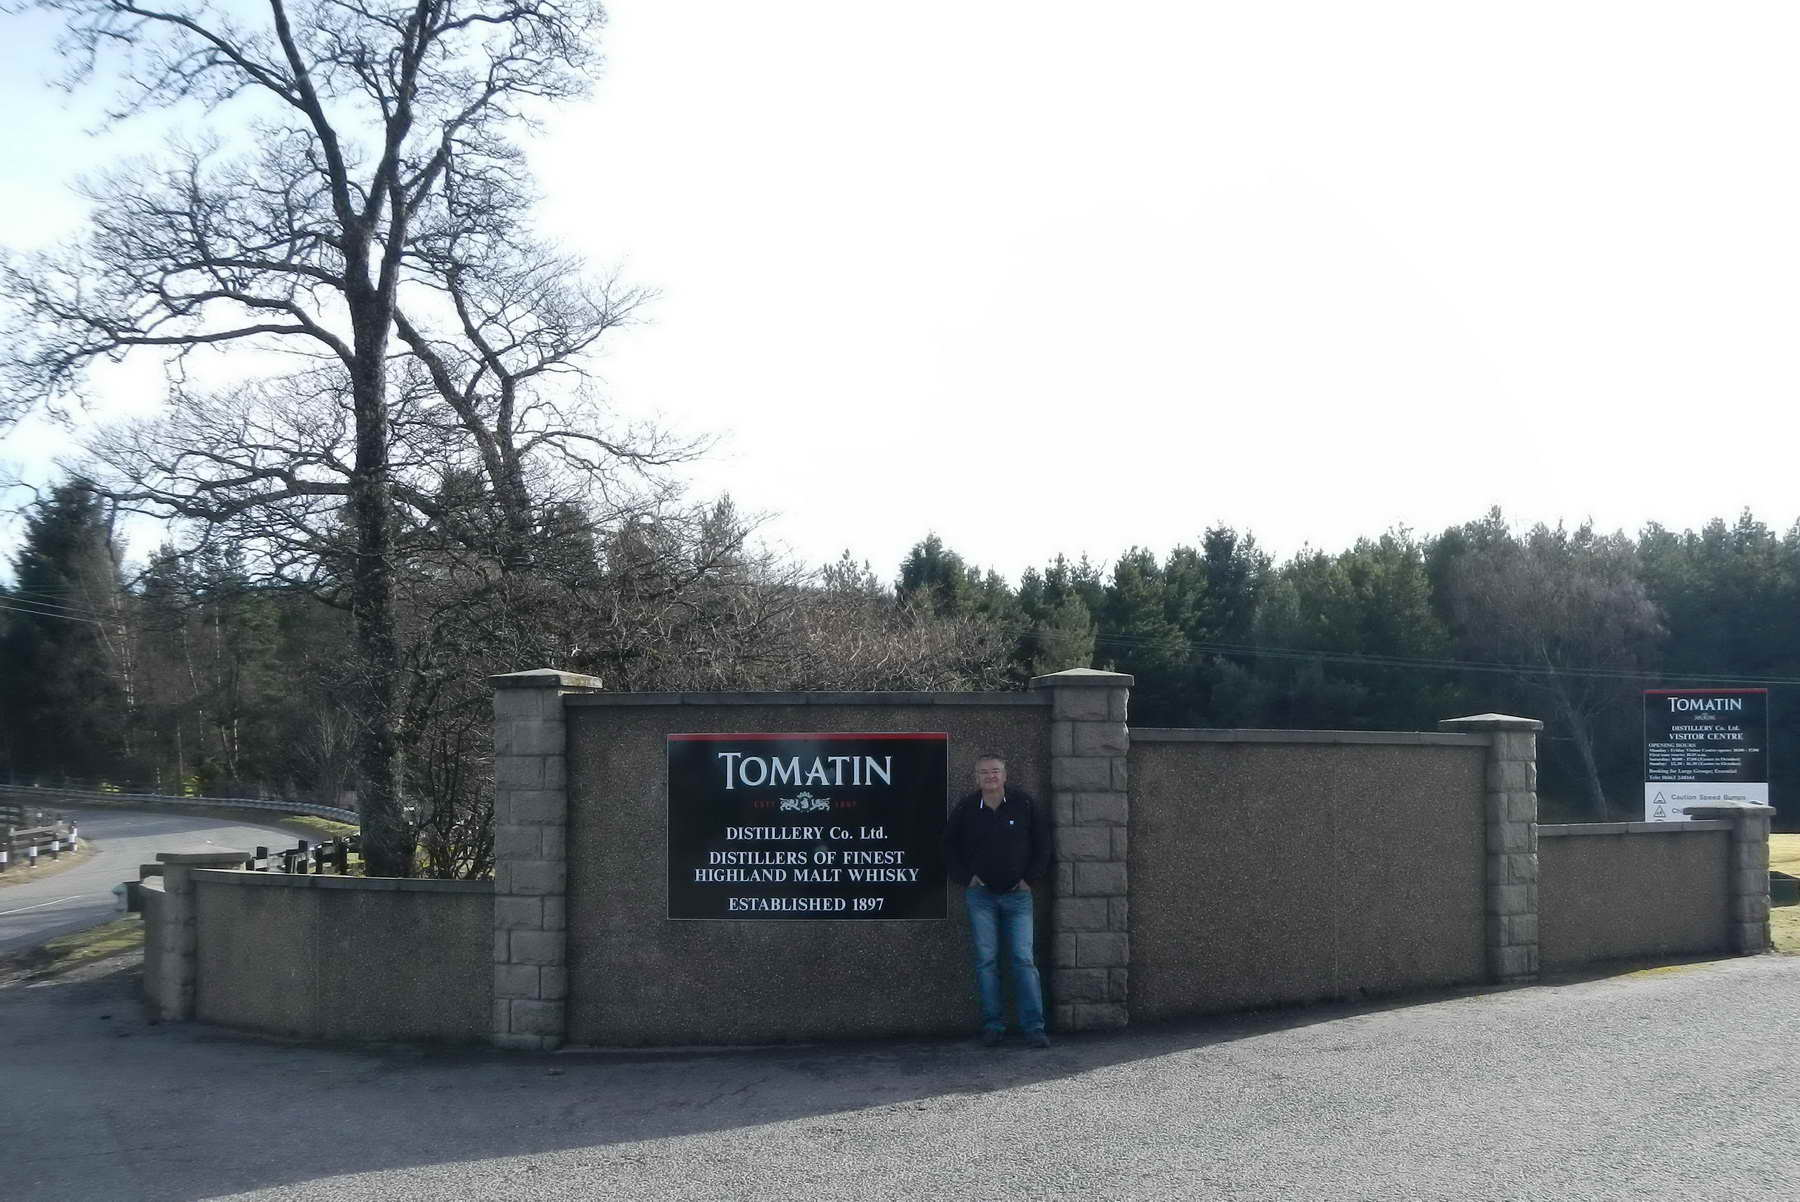 https://static.blog4ever.com/2014/01/761430/Tomatin-01.jpg